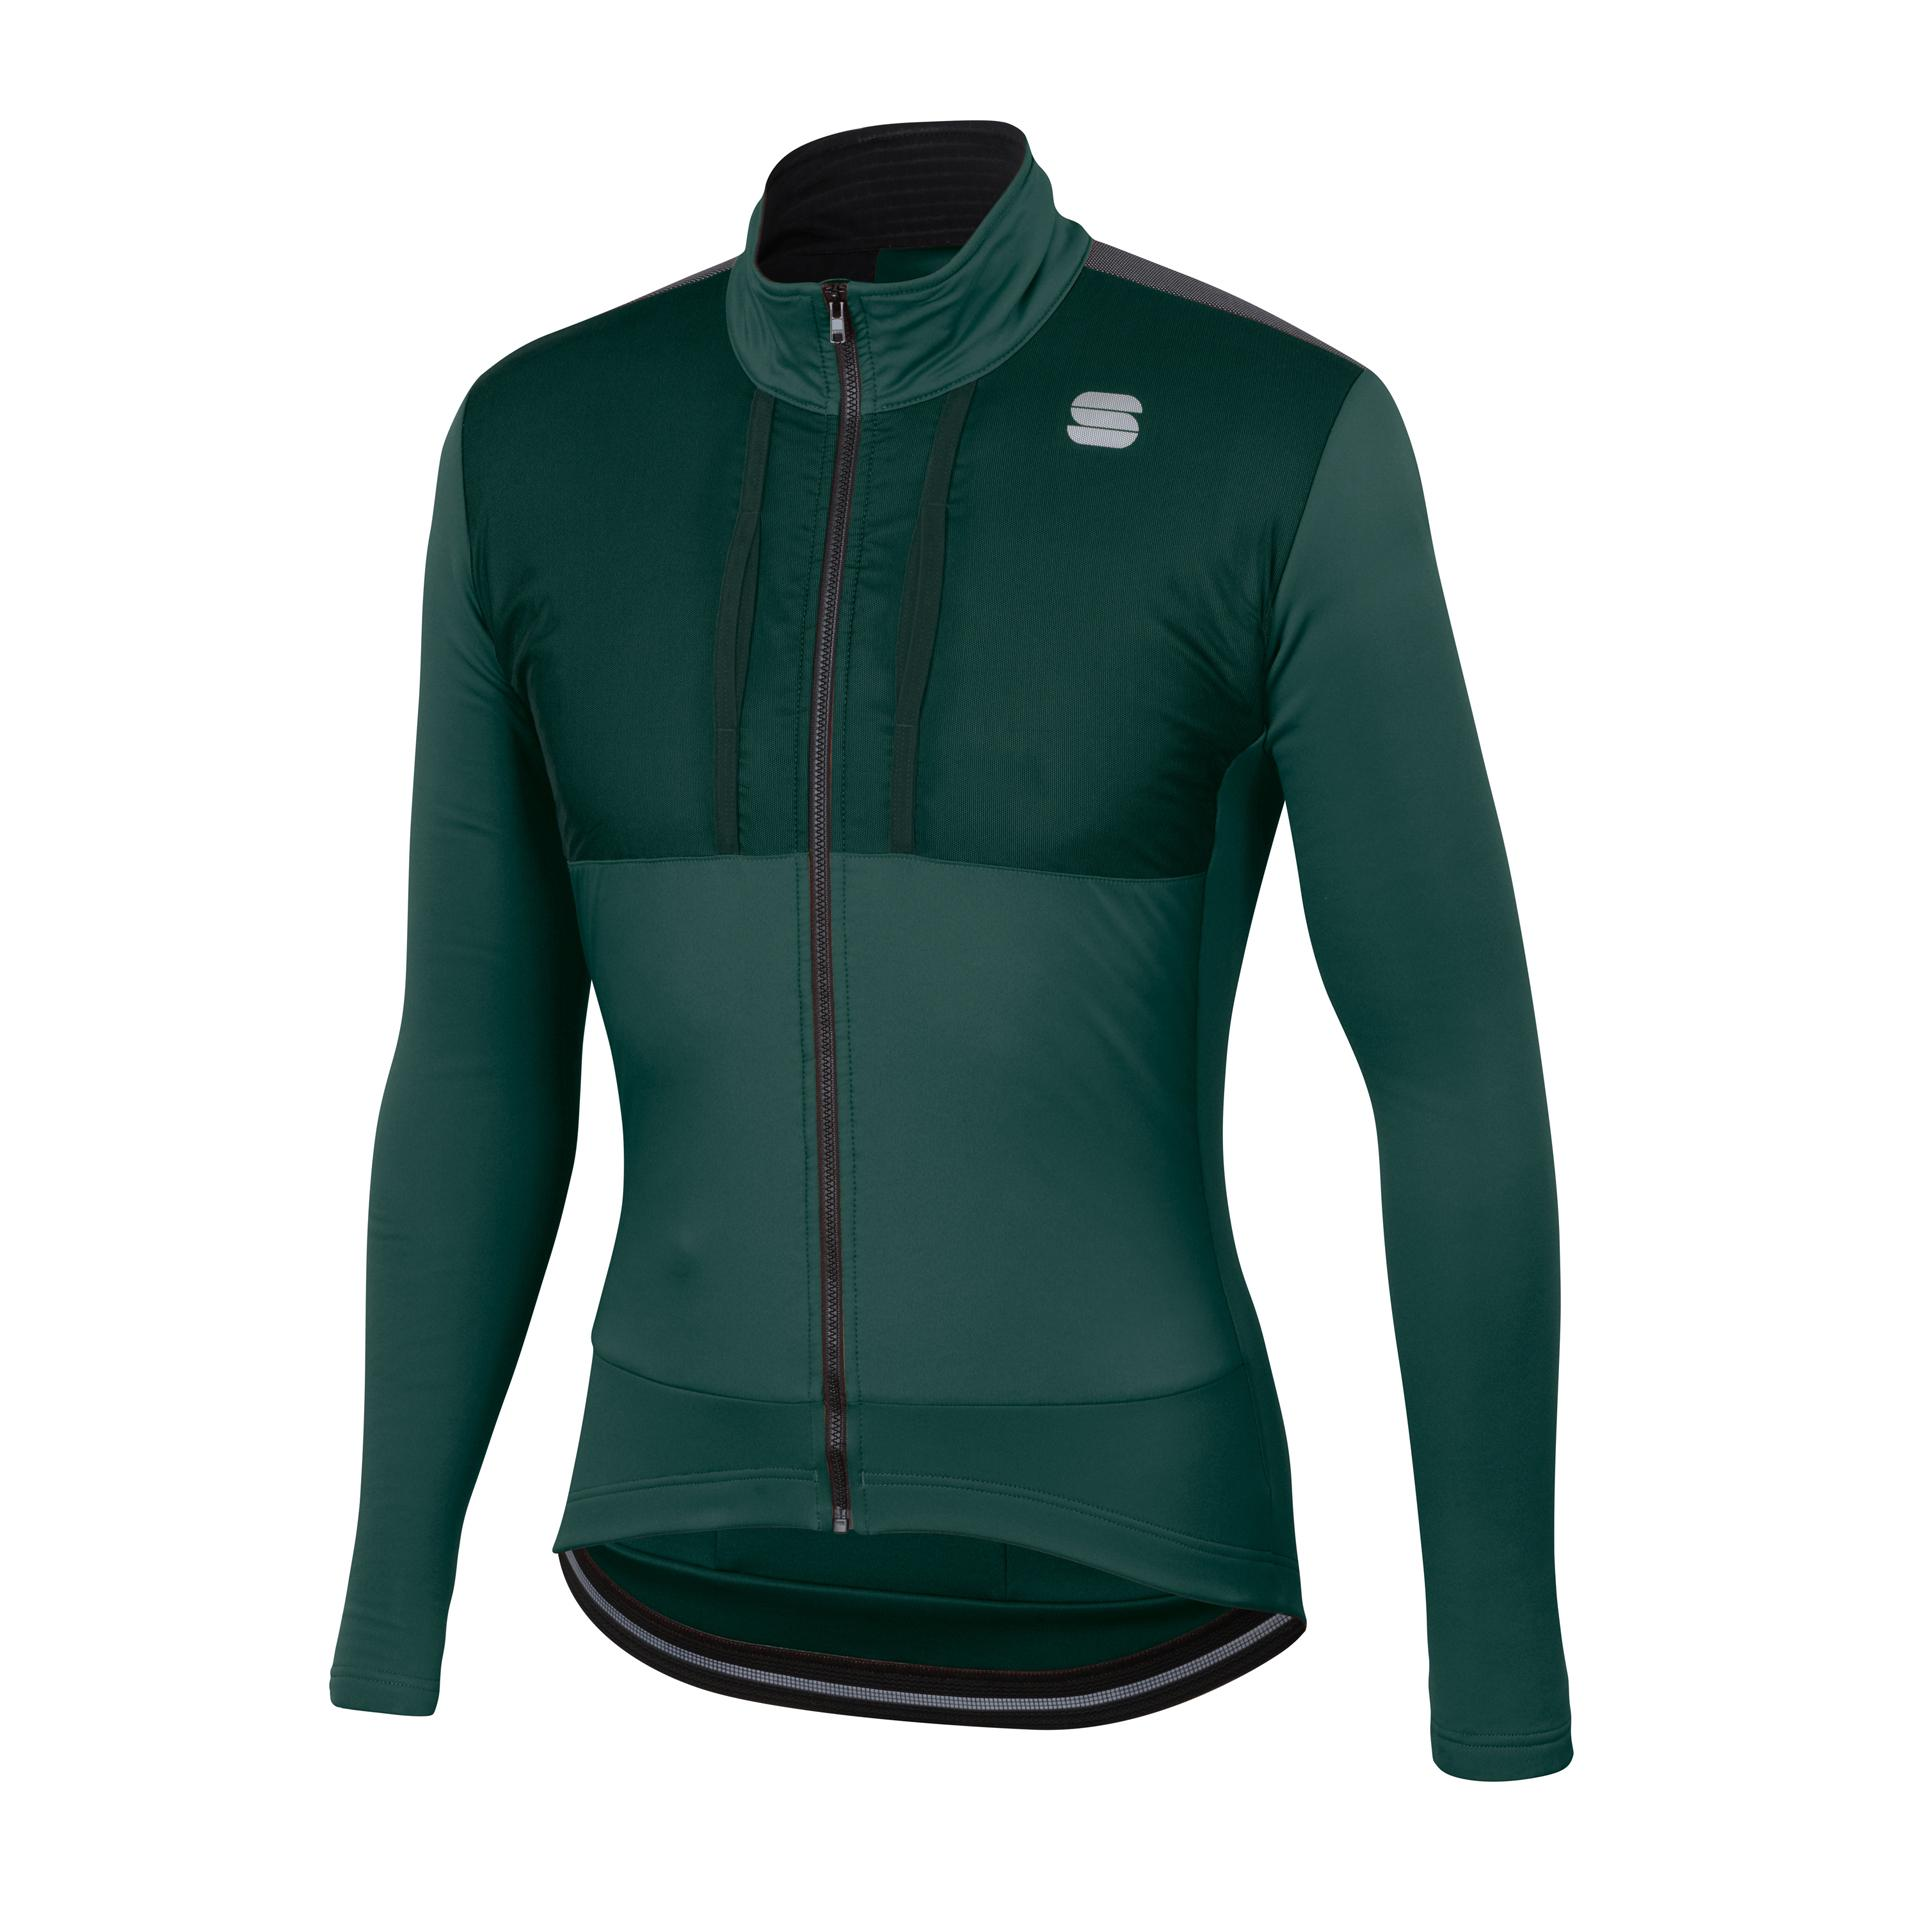 Sportful Fietsjack Heren Groen / Supergiara Jacket-Sea Moss